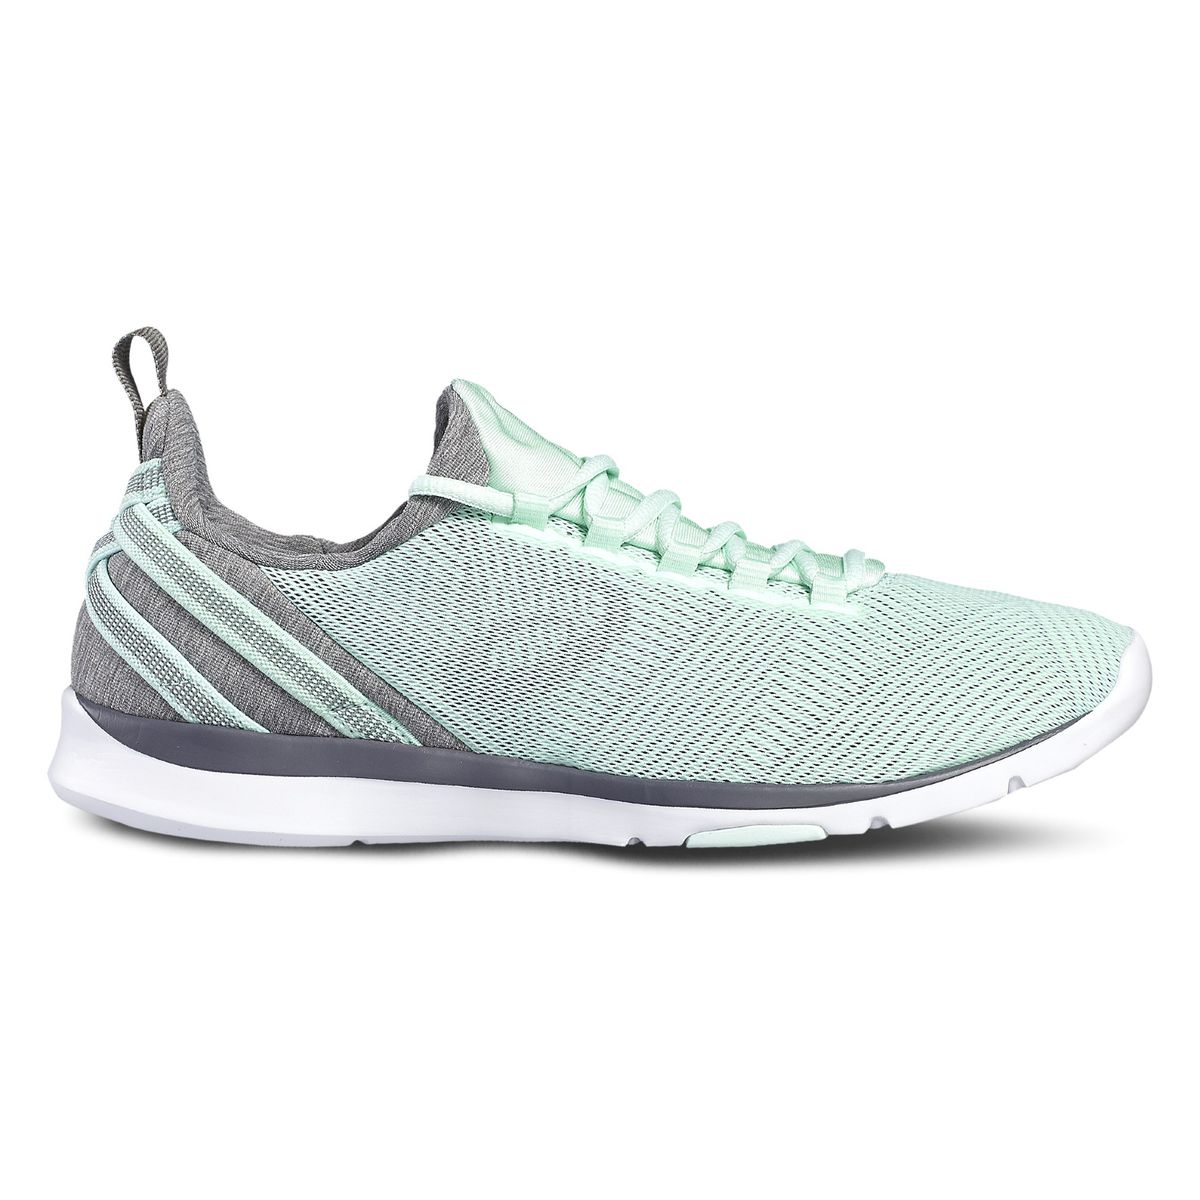 Women's ASICS Gel-Fit Sana 3 Training Shoes